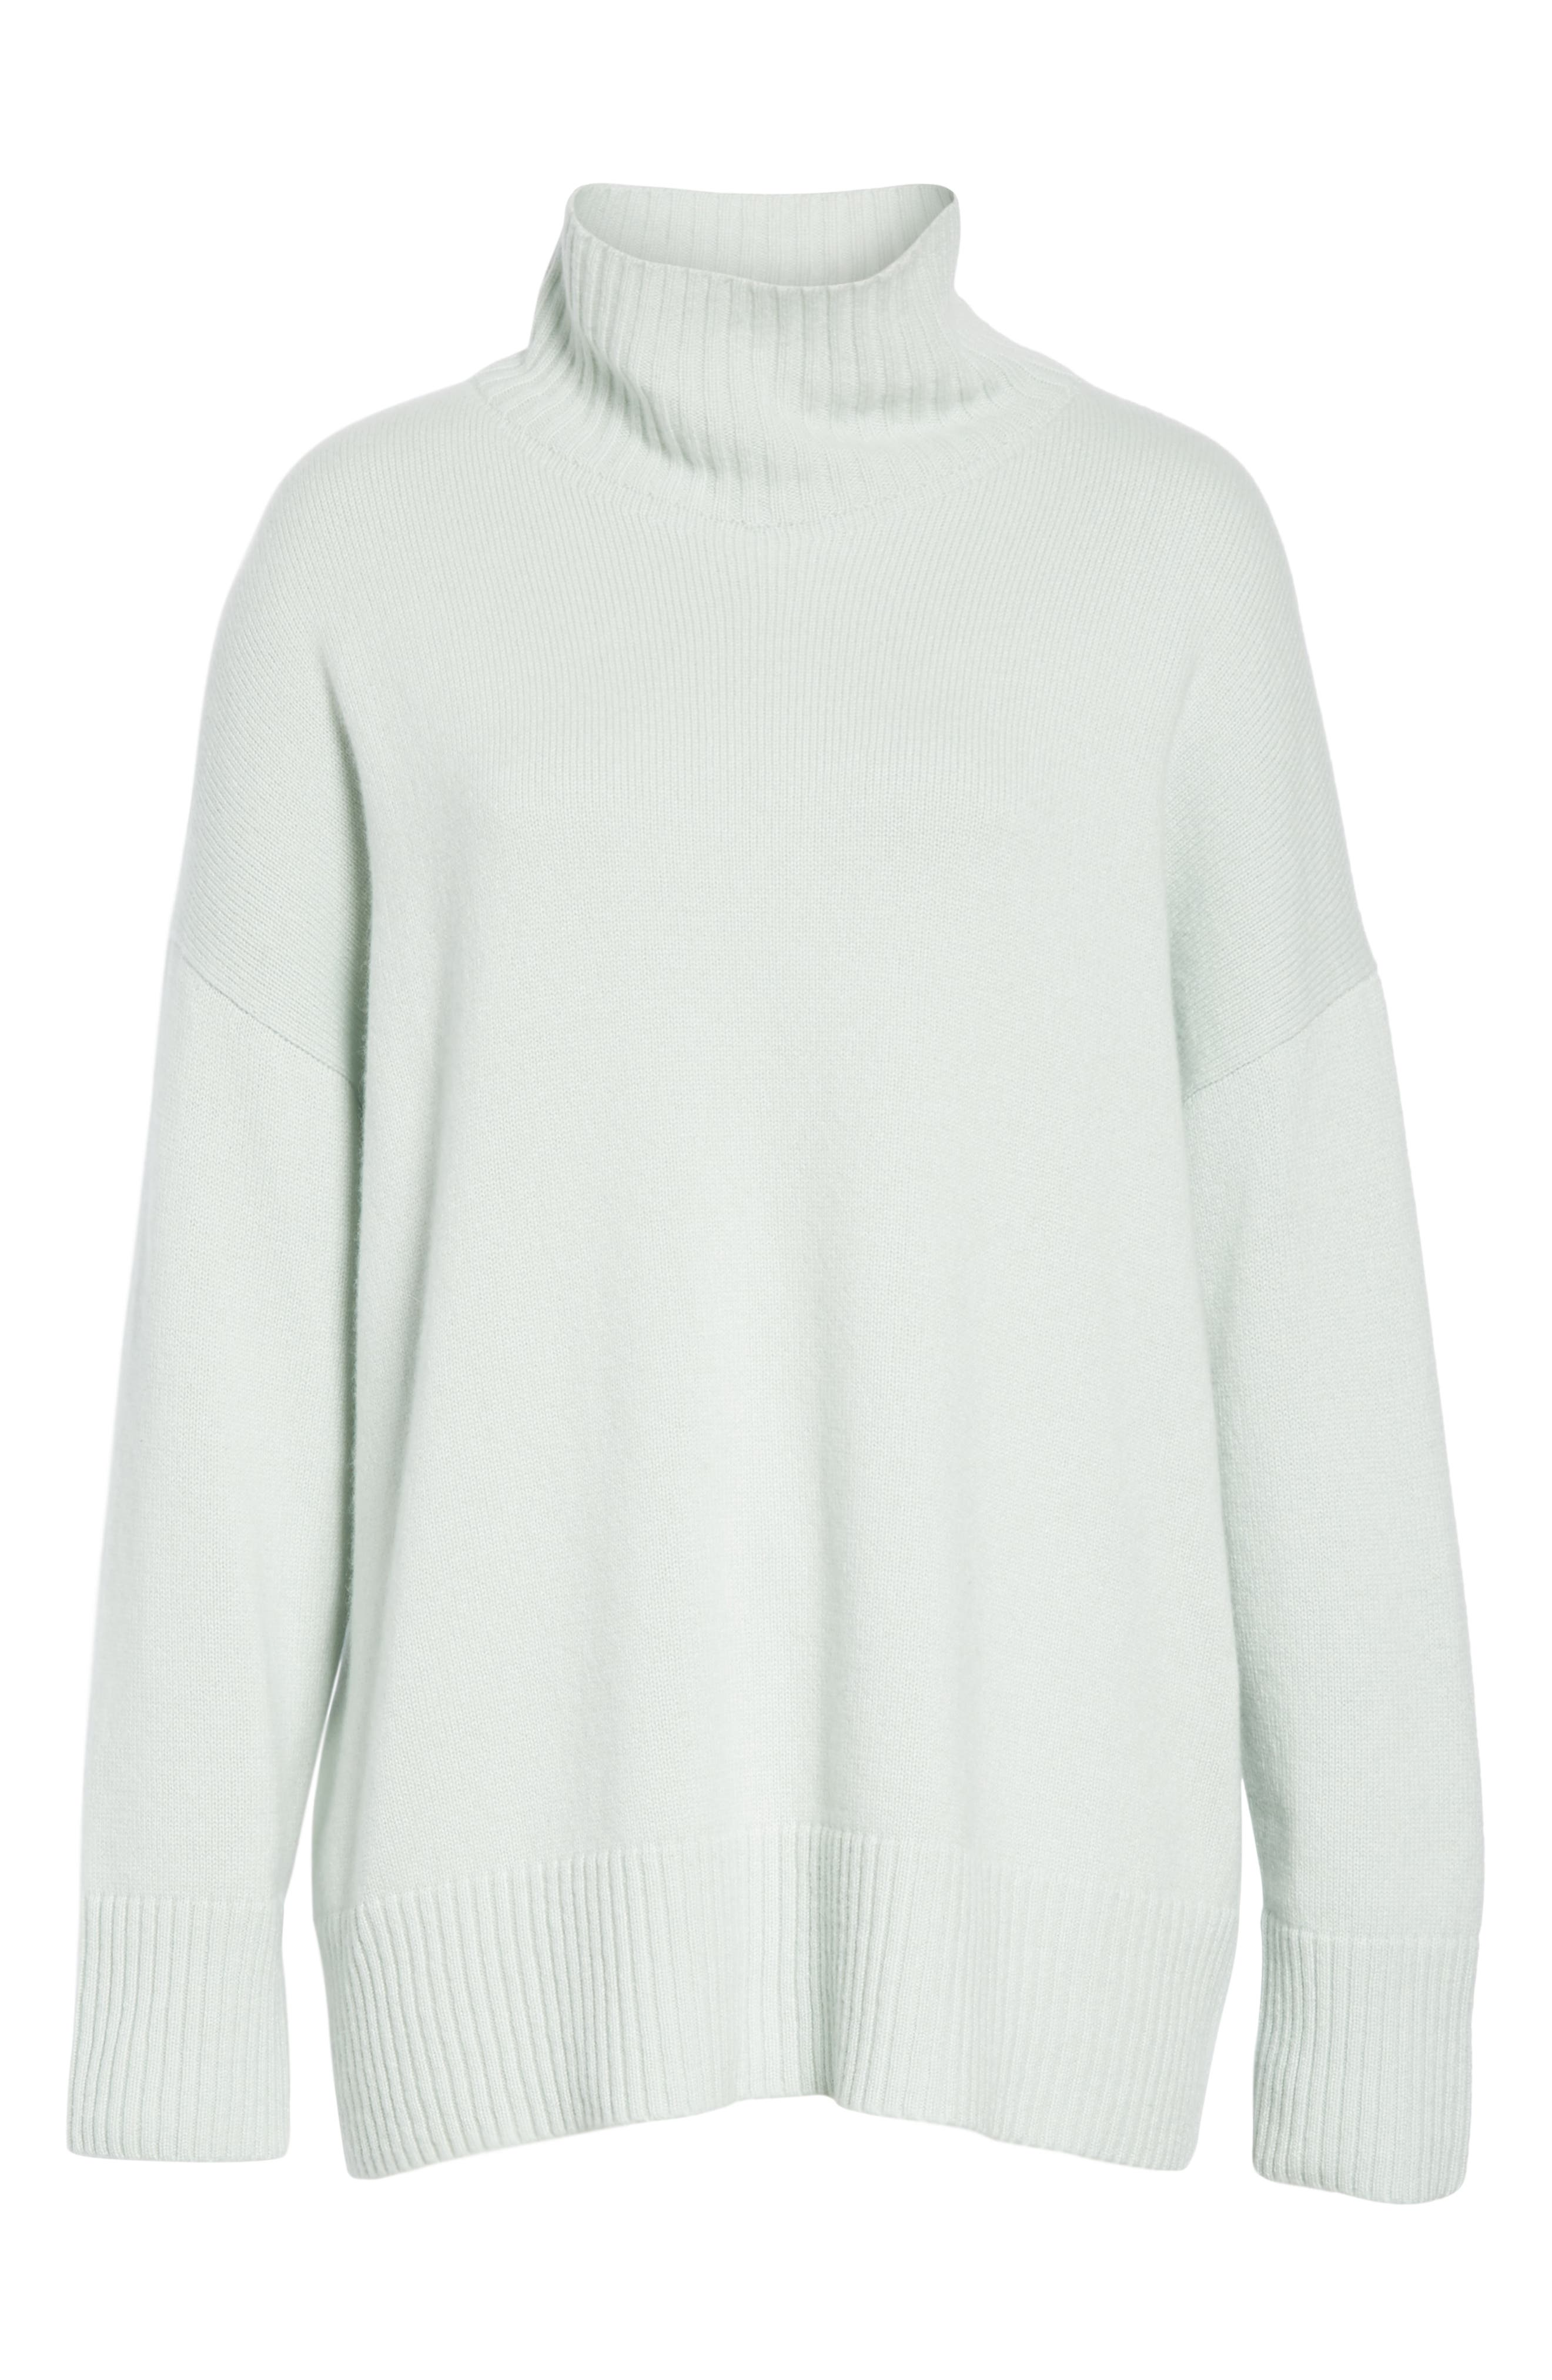 LAFAYETTE 148 NEW YORK,                             Relaxed Cashmere Turtleneck Sweater,                             Alternate thumbnail 6, color,                             400